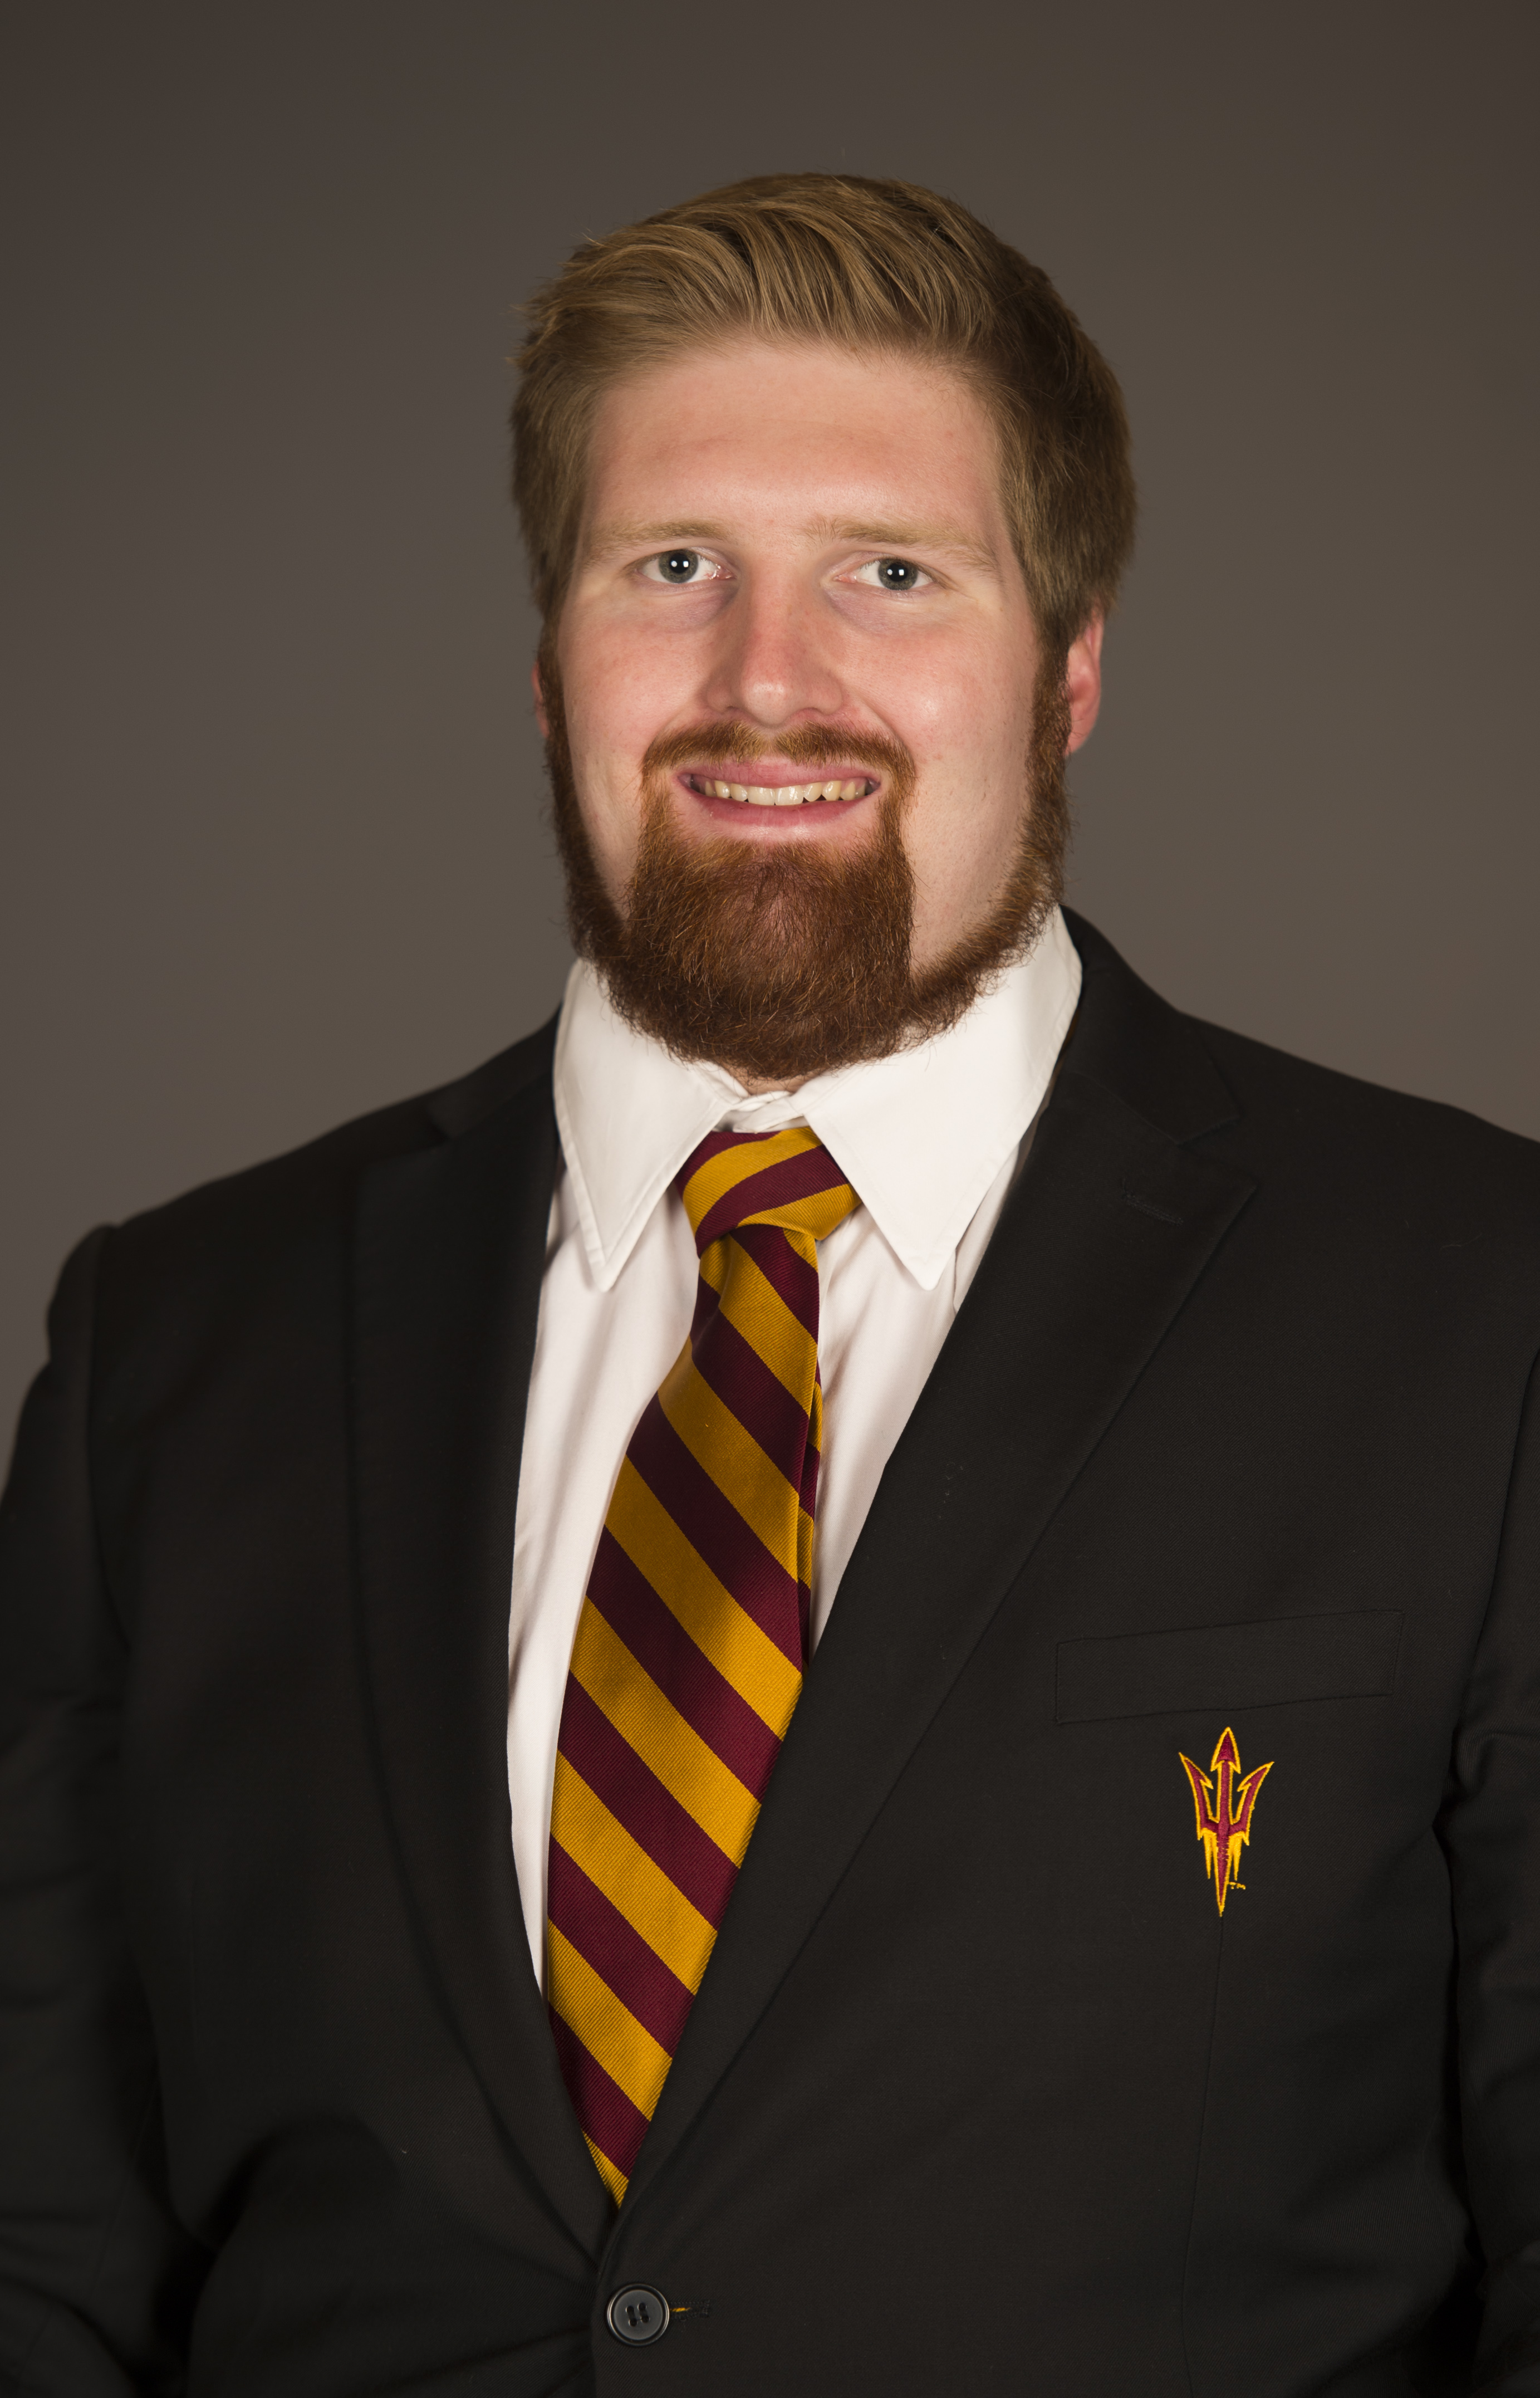 Edward  Chip  Sarafin in Phoenix. Arizona State University outside linebacker Sarafin has told a local magazine he is gay, making him the first active Division I football player to come out